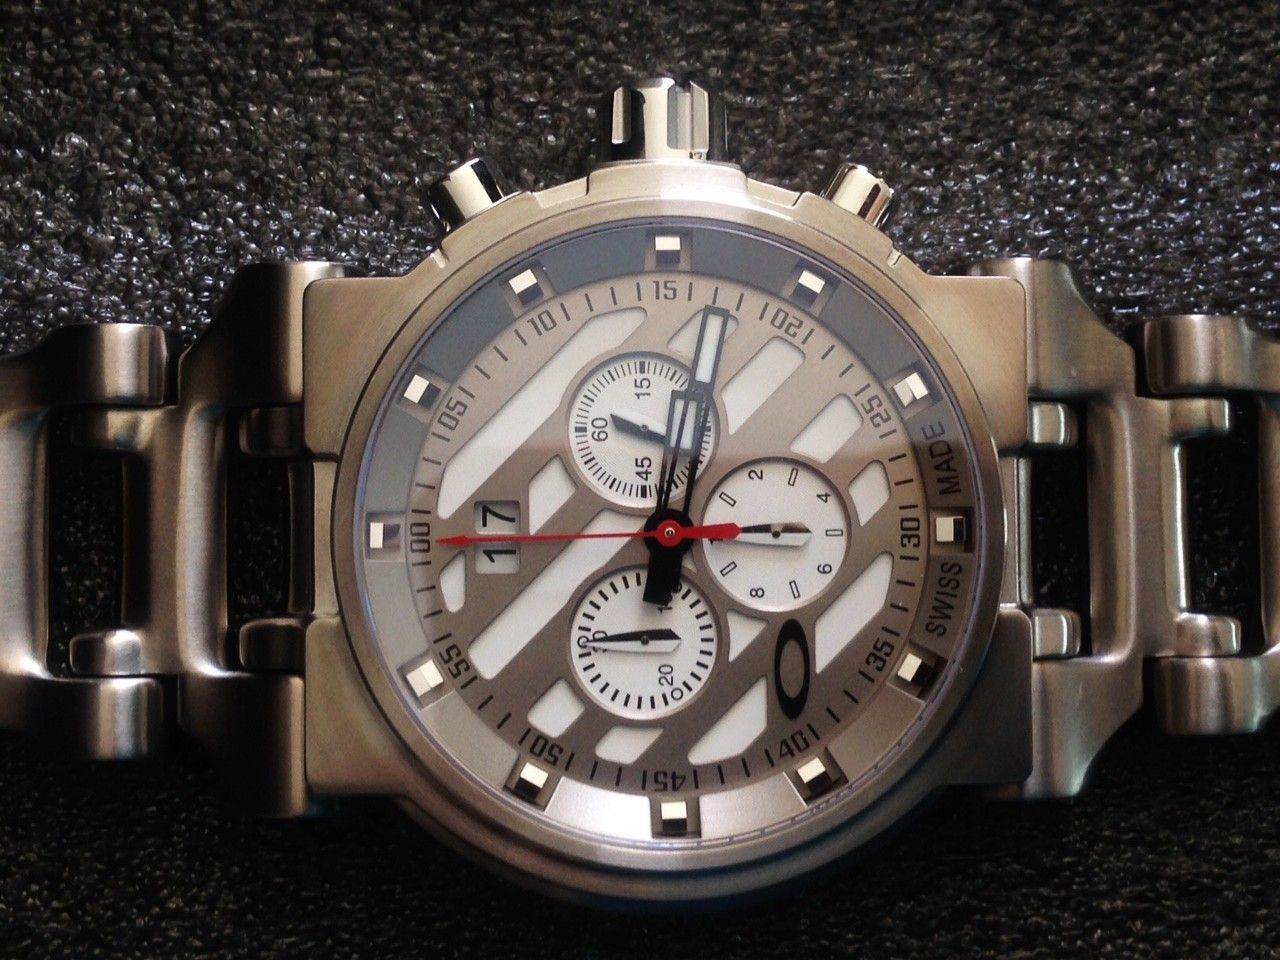 NEW IN BOX Oakley Hollow Point Titanium Watch White Dial 10-046 - 3.JPG